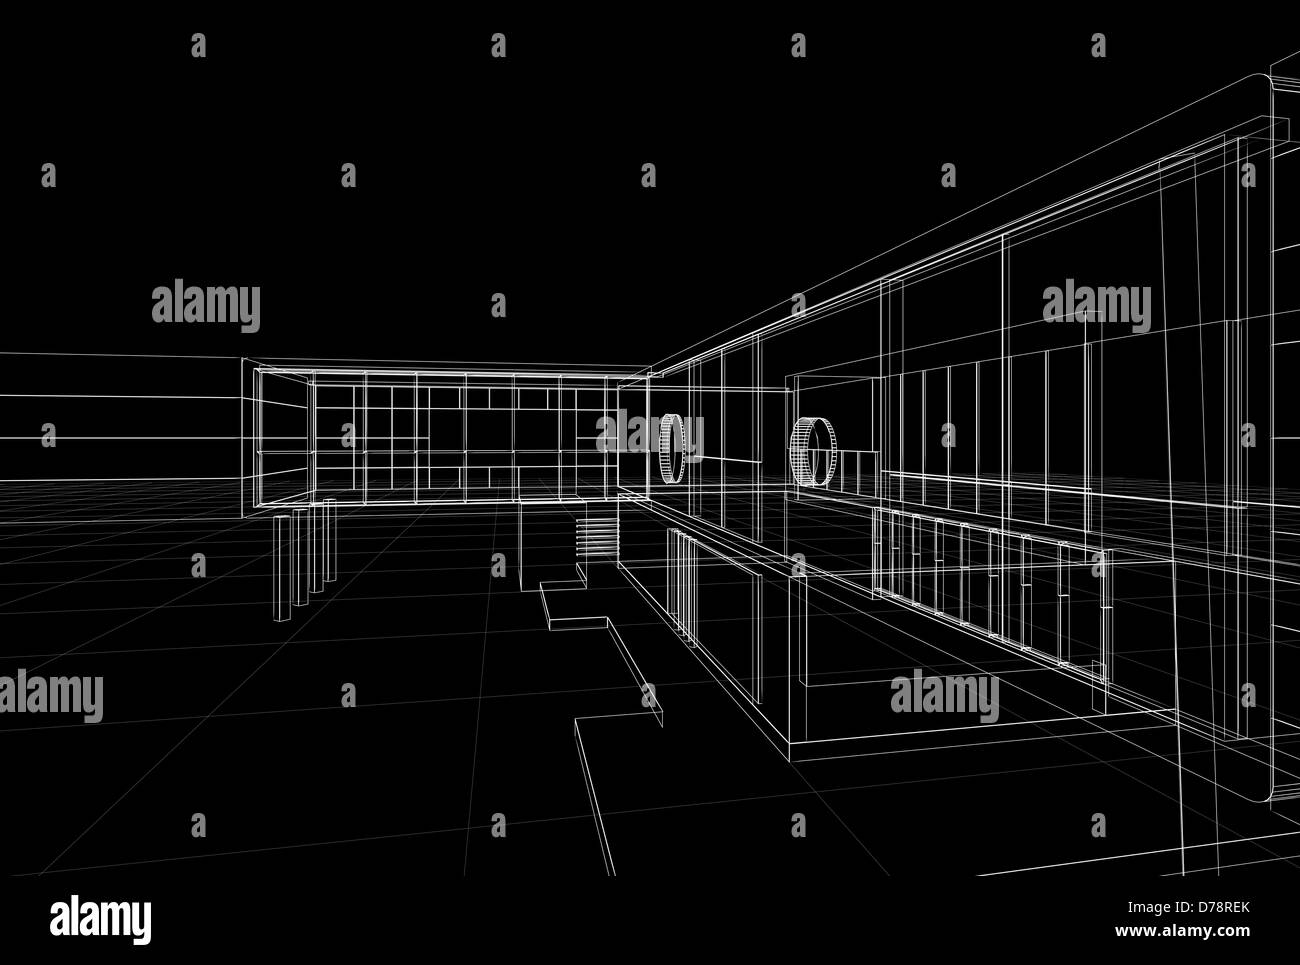 Building blueprint on black background building design and 3d model building blueprint on black background building design and 3d model my own malvernweather Choice Image